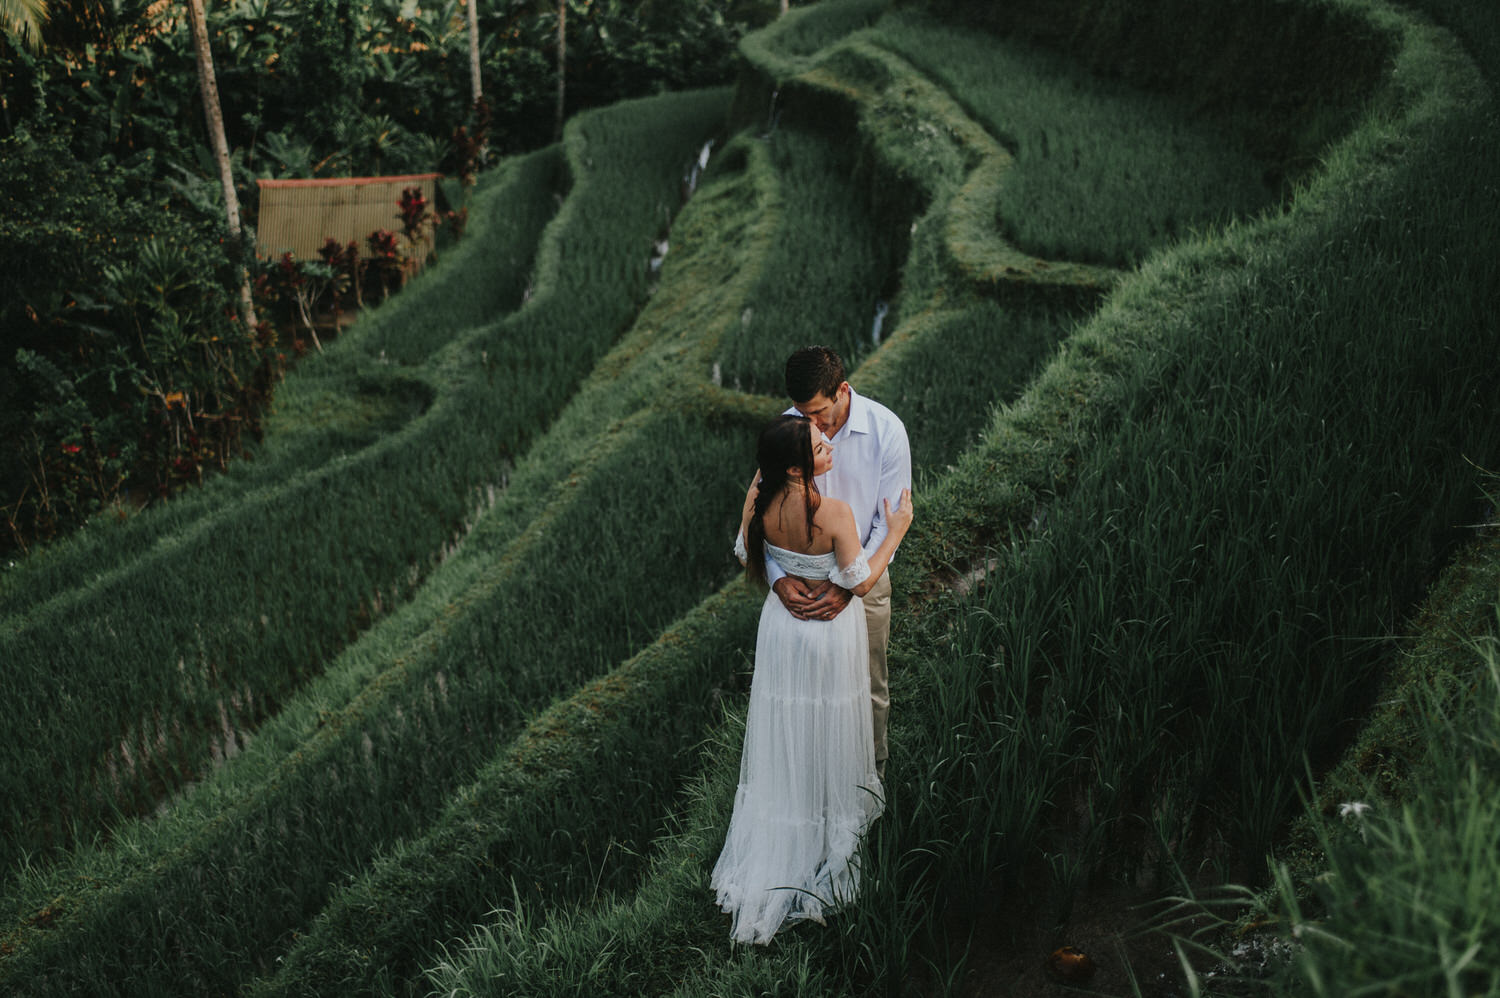 bali wedding - elopement - ubud wedding - diktatphotography - olga + Jason - 21